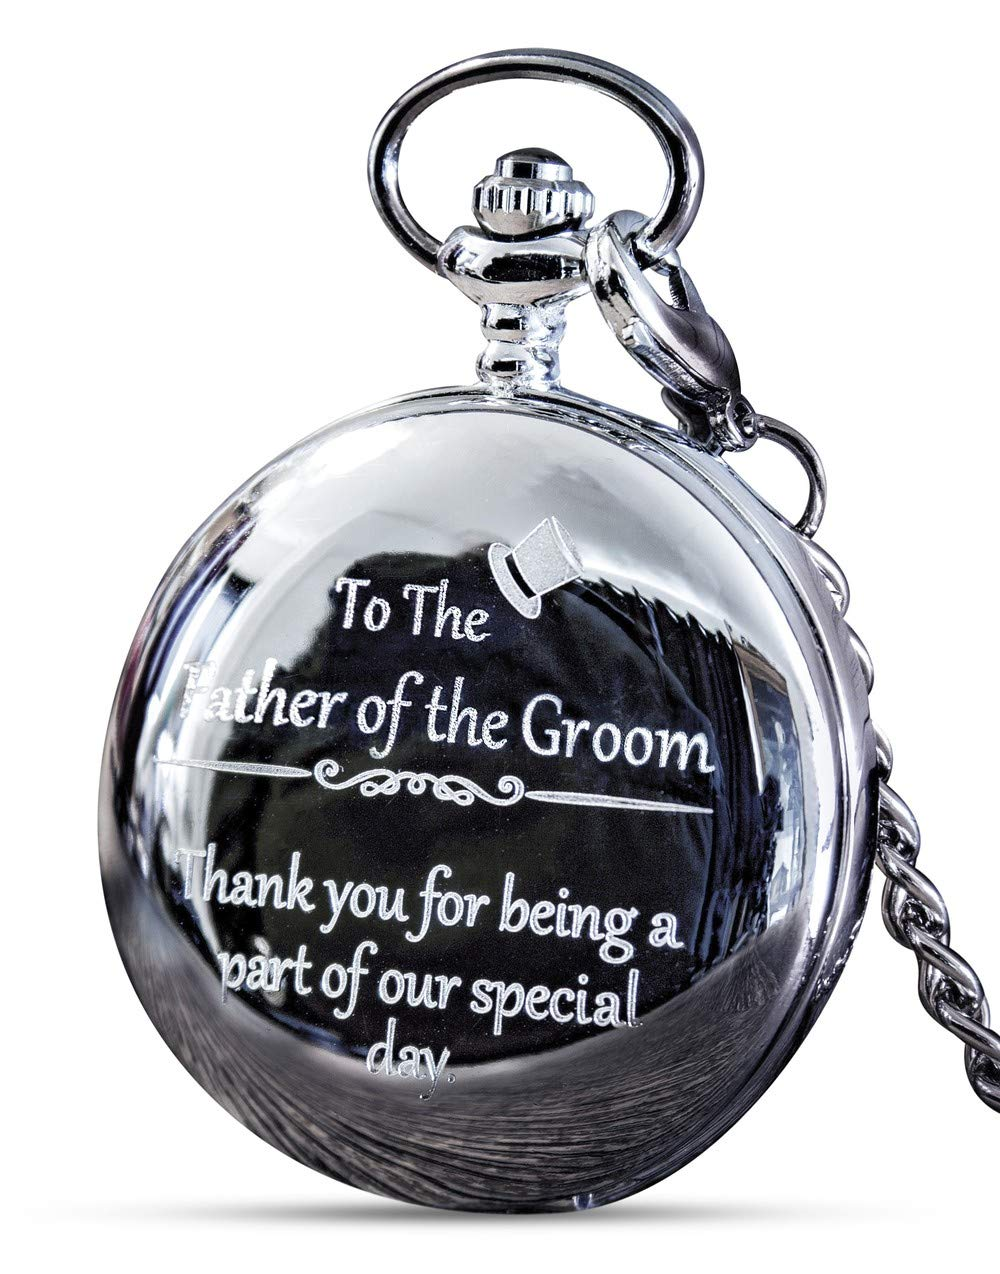 Father of The Groom Gifts - Engraved Father of The Groom Pocket Watch - The Luxury Wedding Gift Choice by FREDERICK JAMES